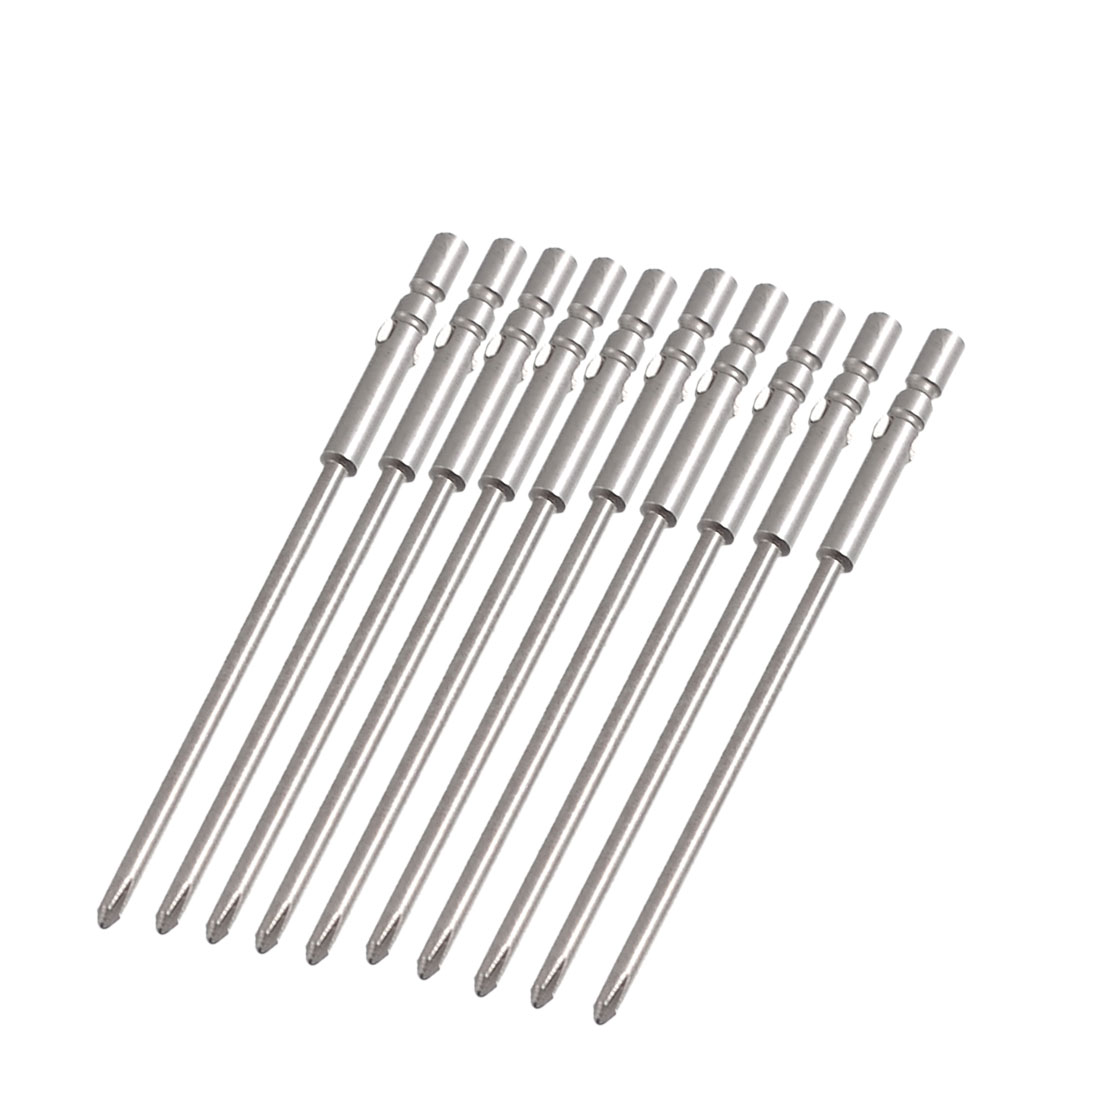 10 Pcs 4mm Shank 80mm Length 2.5mm Phillips PH1 Magnetic Screwdriver Bits